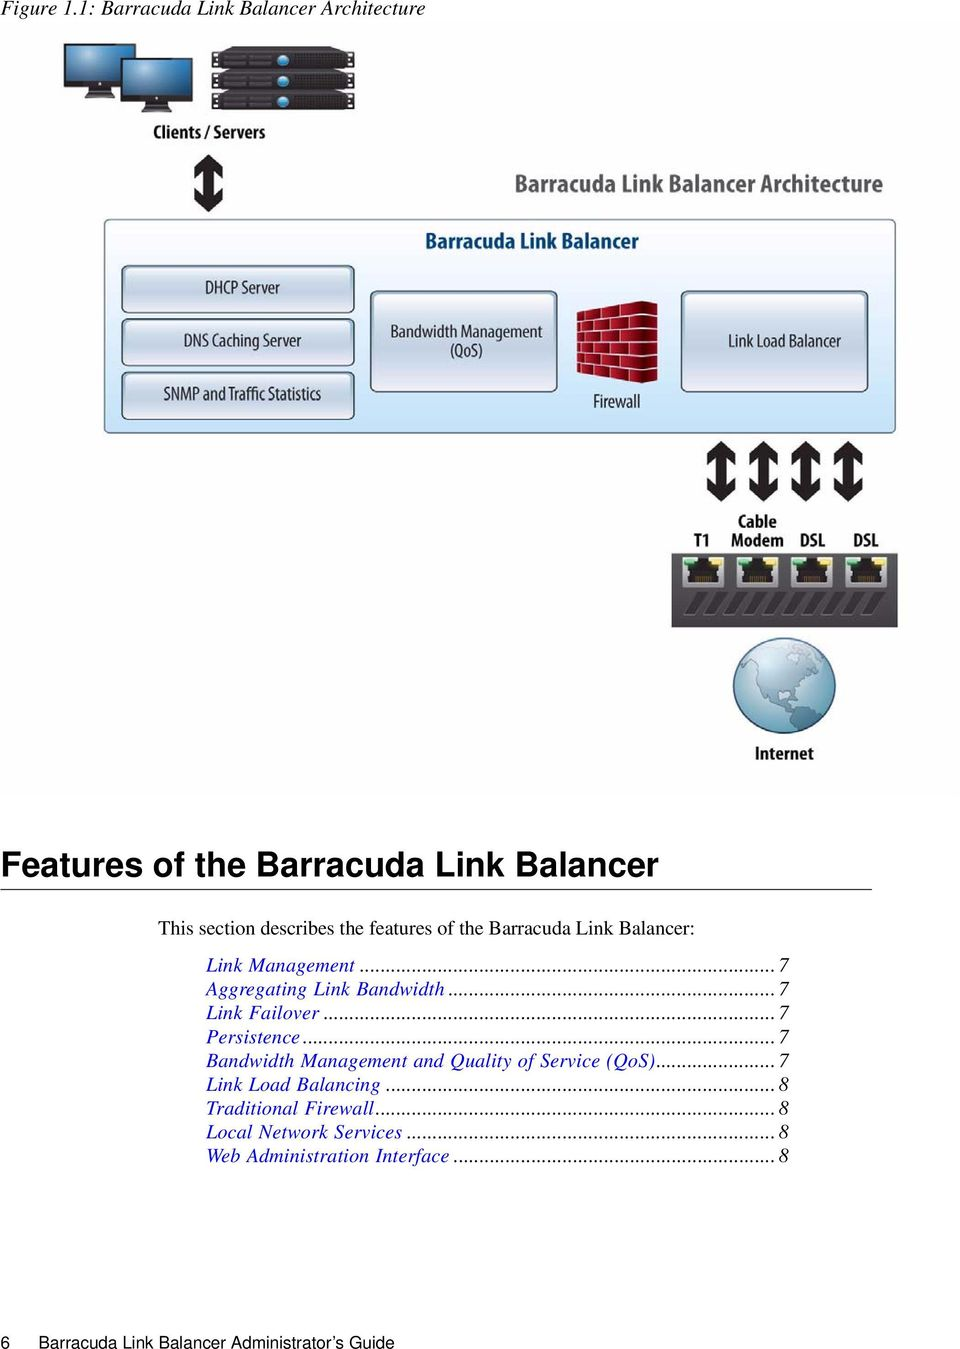 features of the Barracuda Link Balancer: Link Management... 7 Aggregating Link Bandwidth... 7 Link Failover.